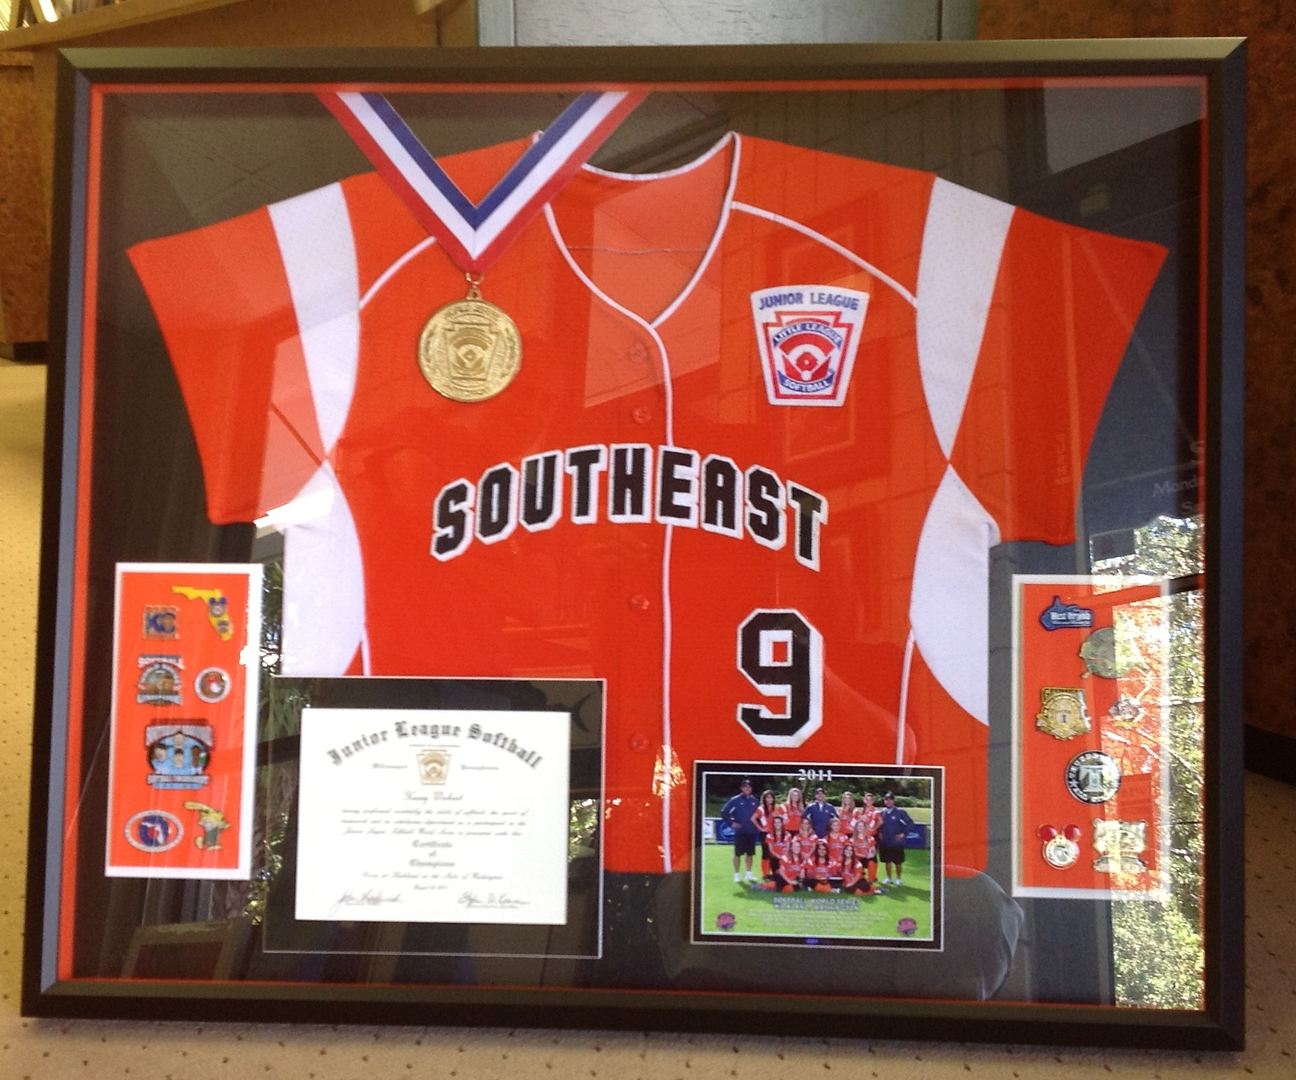 Frame factory and gallery in south tampa tampa softball jersey and championship display solutioingenieria Choice Image